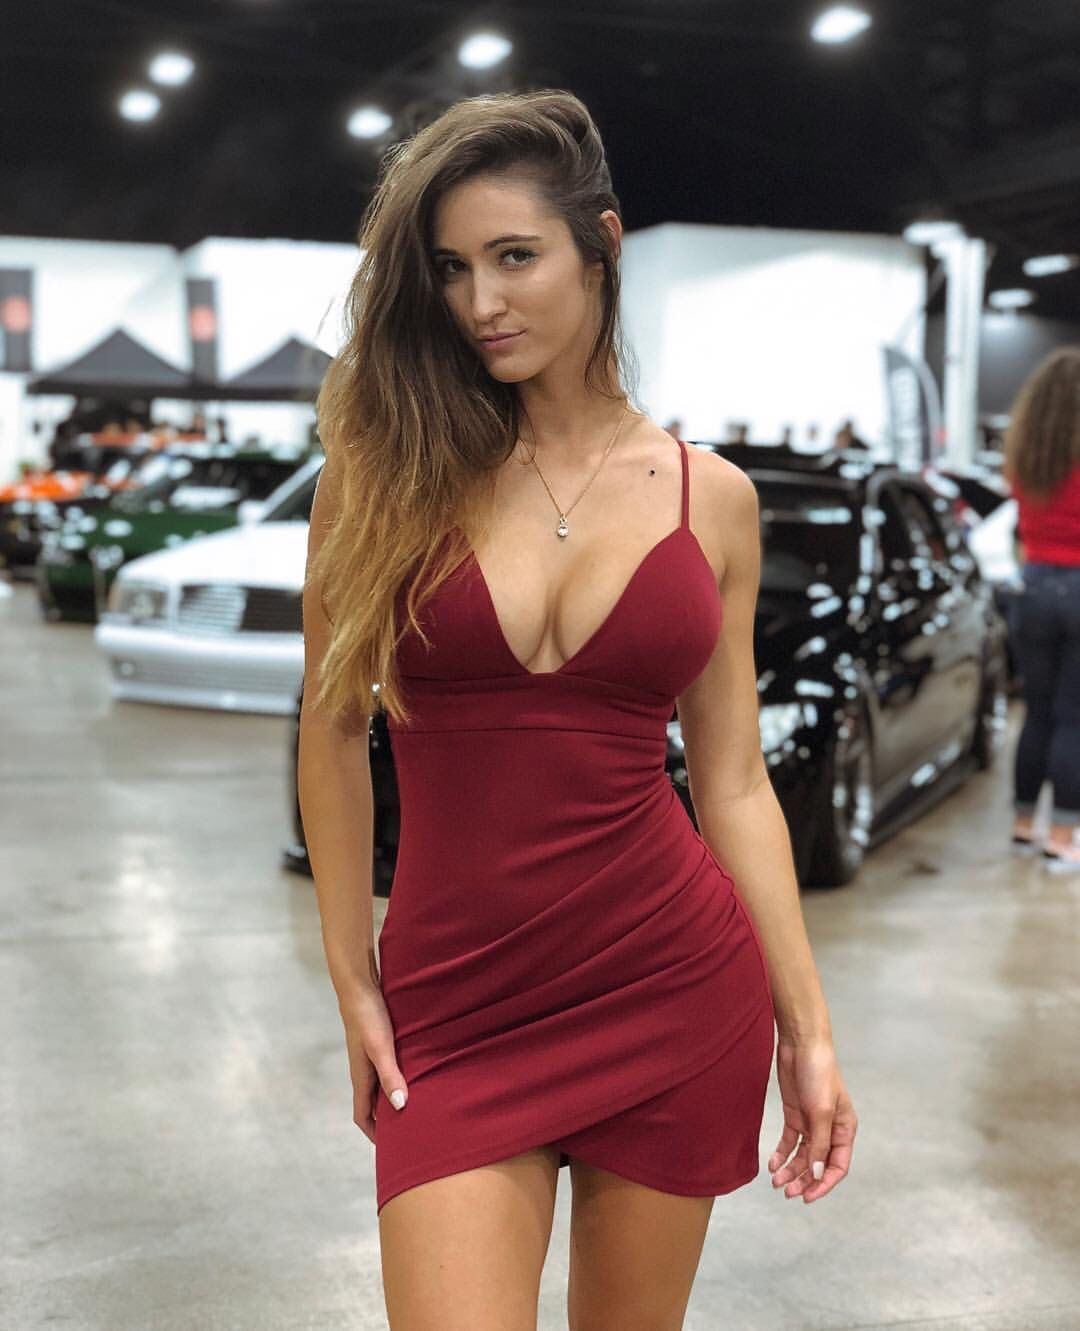 Reddit Gives You The Best Of The Internet In One Place Get A Constantly Updating Feed Of Breaking News Fun Stories P Tight Dresses Favorite Dress Mini Dress